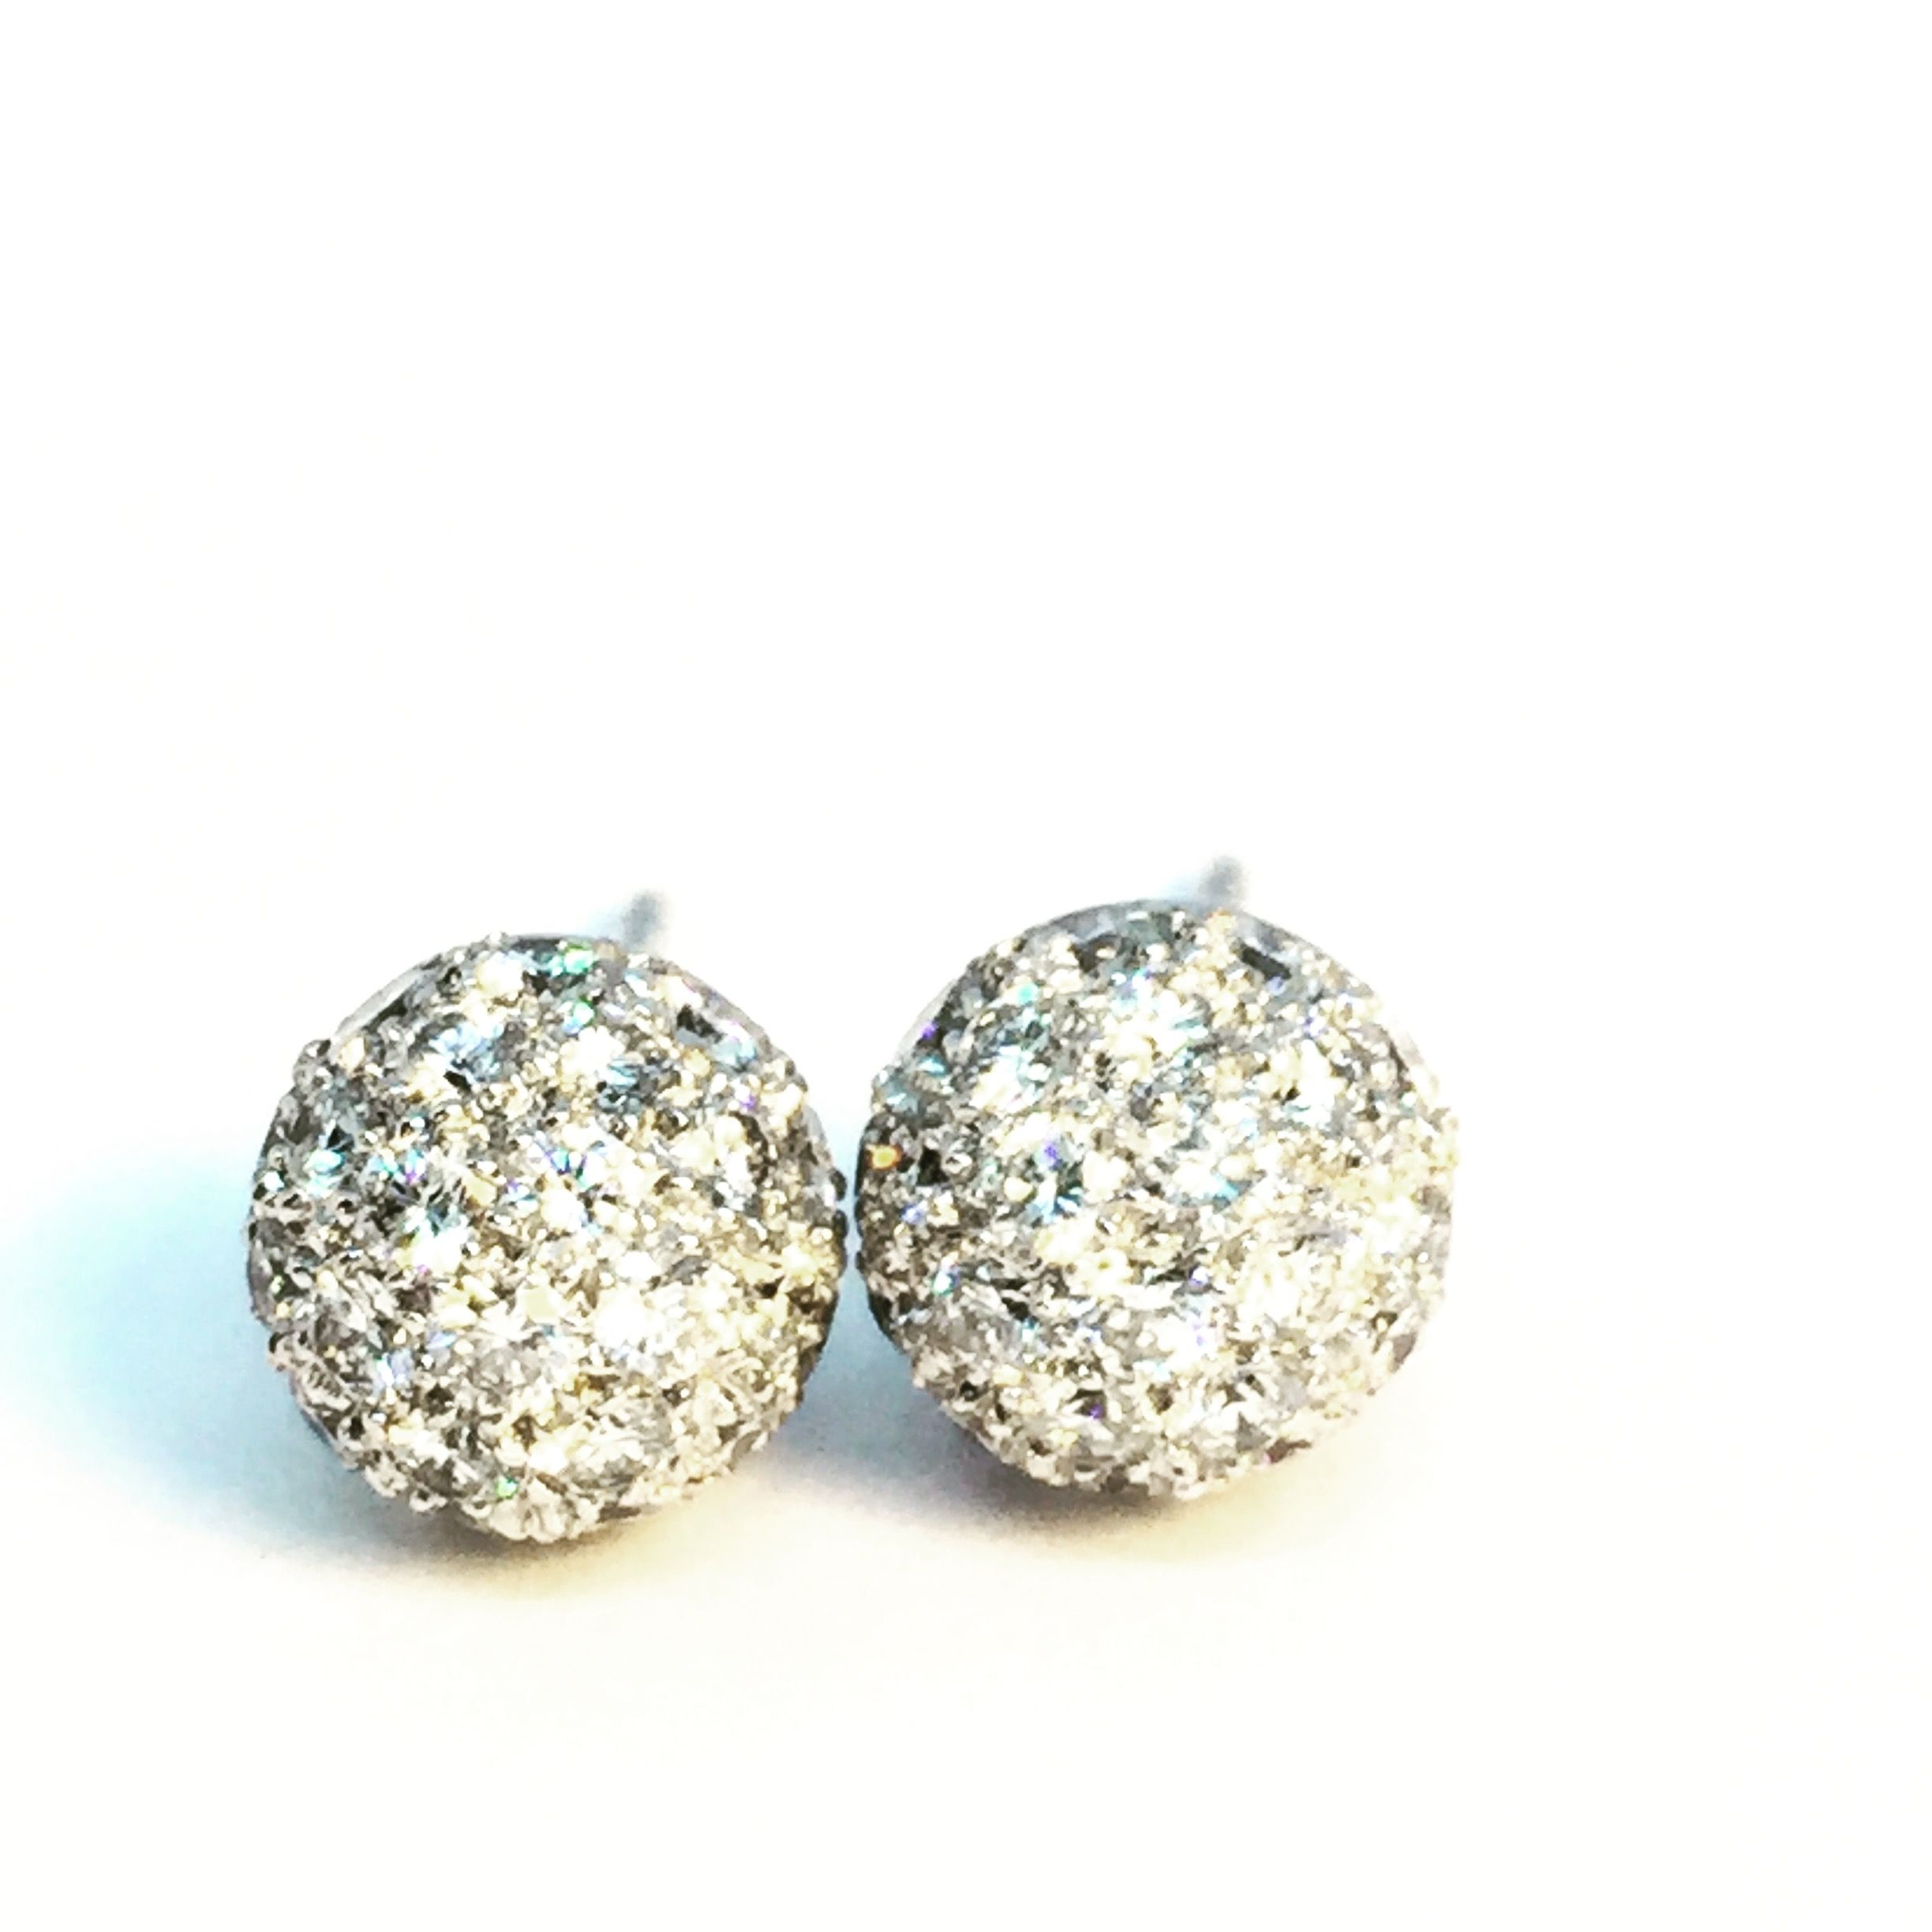 France Platinum Pave Diamond Ball Ear Studs 2 990 00